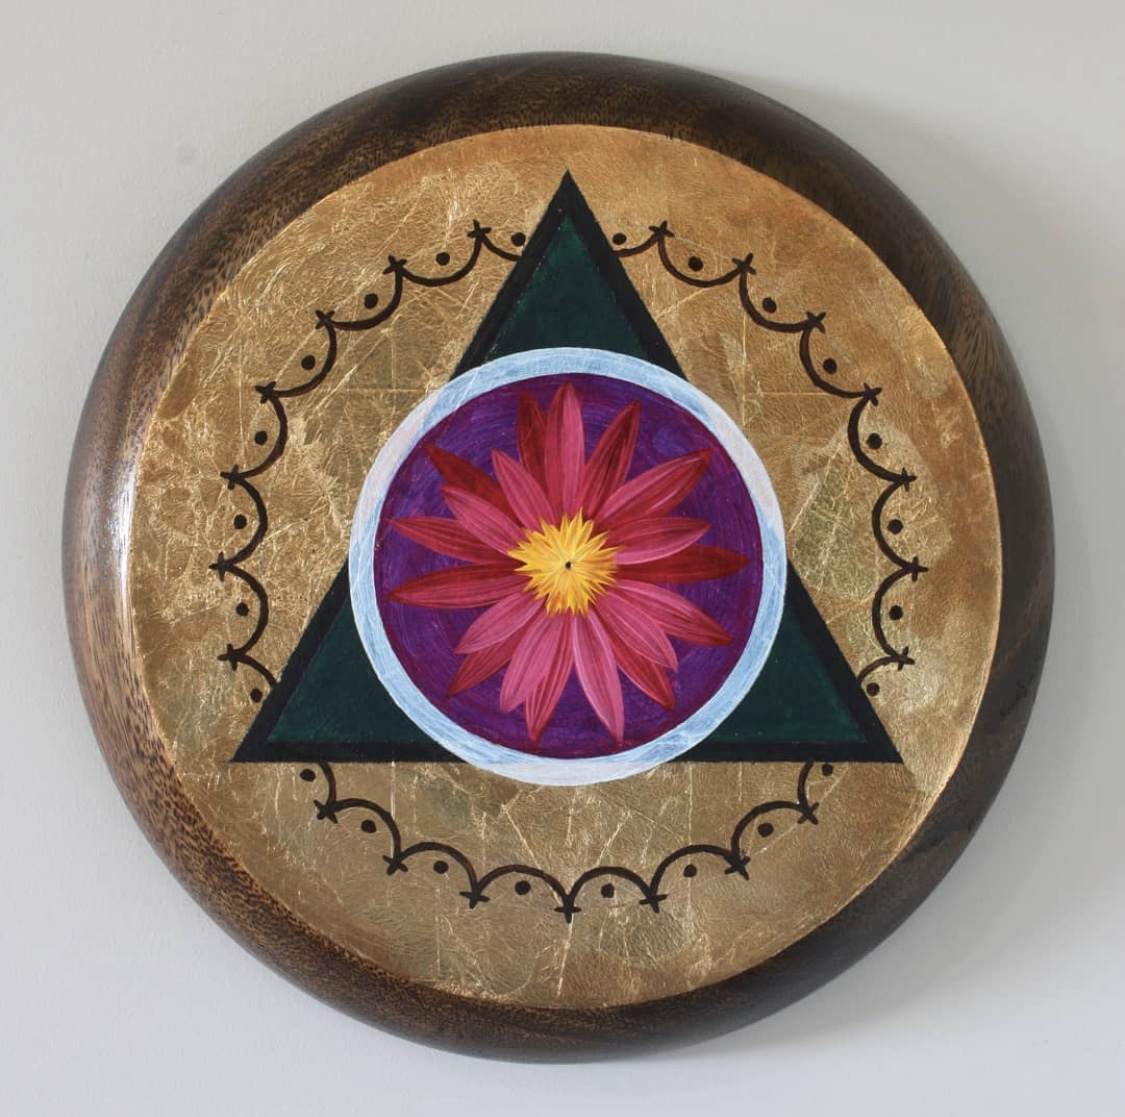 'AO#3' Duane Moyle, Oil and gold leaf on timber serve ware $440 (252mm diameter)